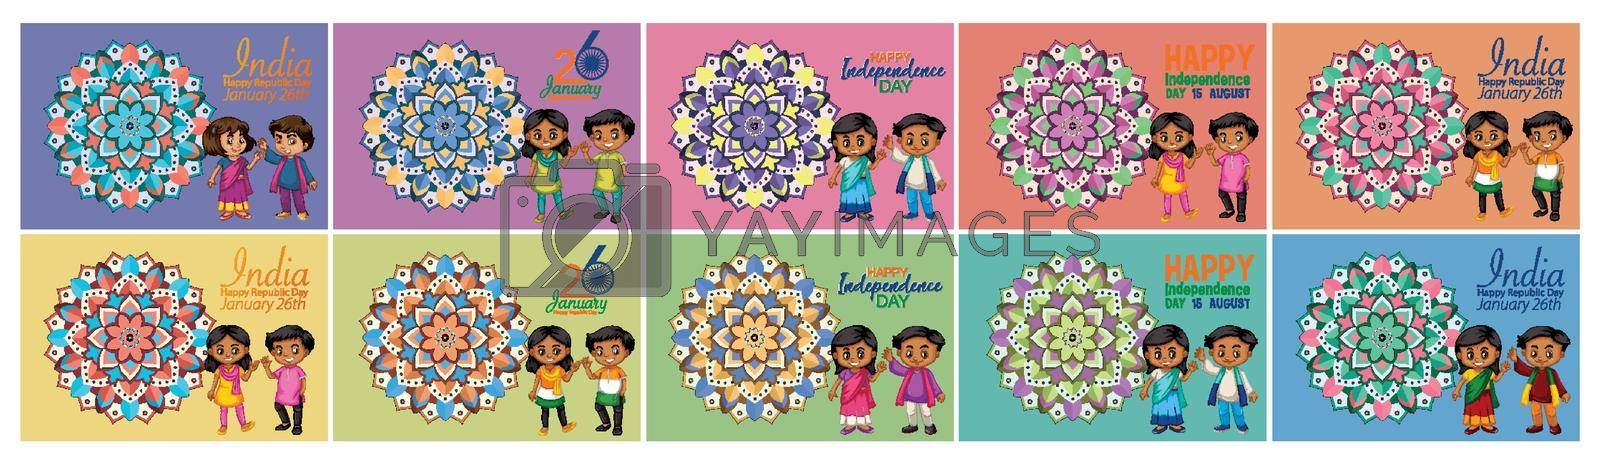 India Independence day posters in different color backgrounds illustration